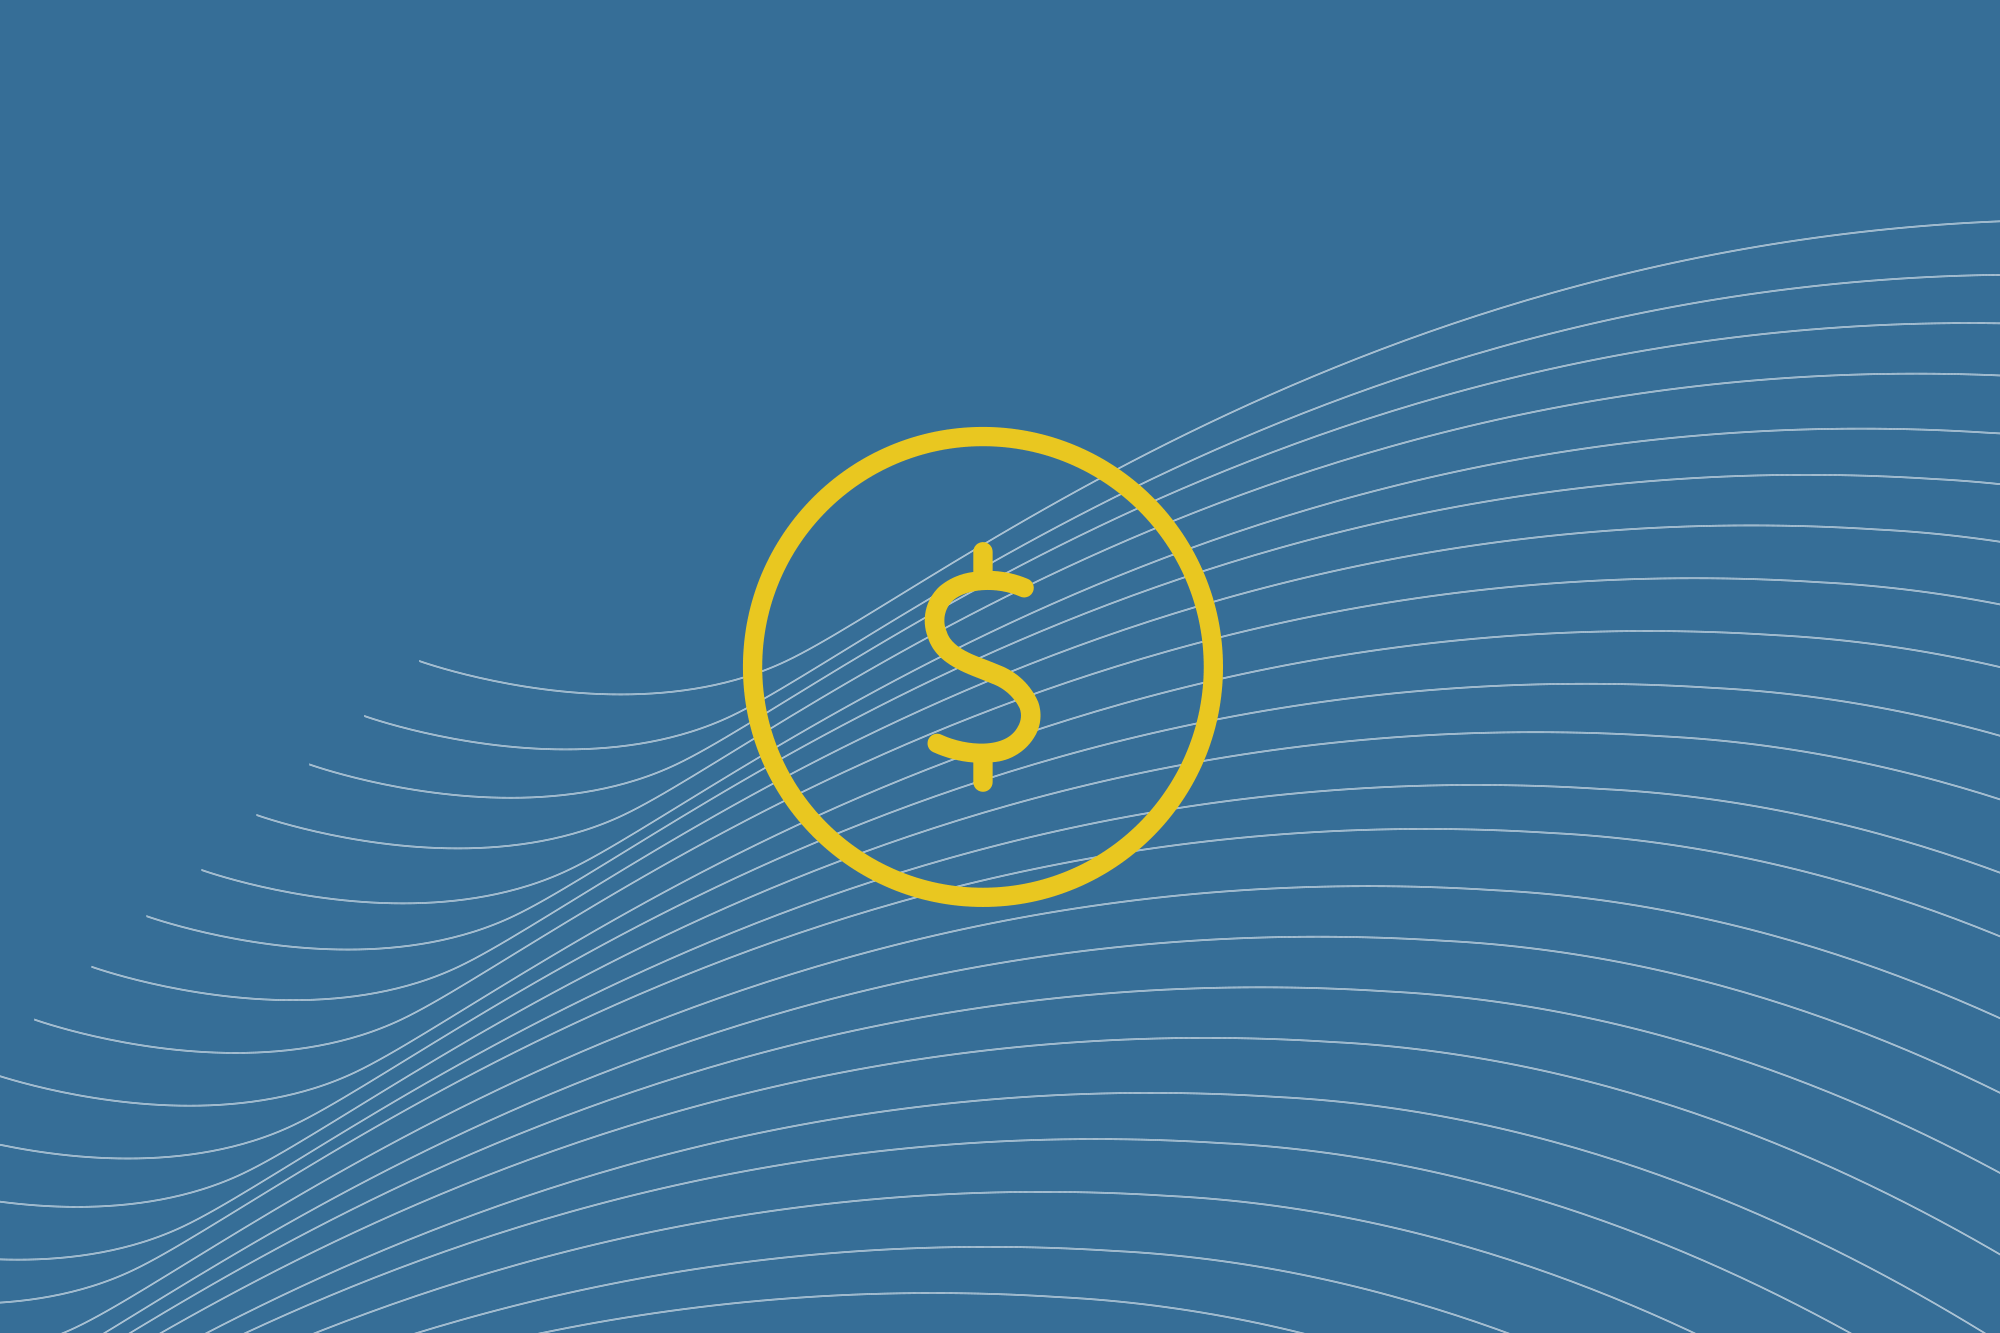 Though Capital icon with $ sign